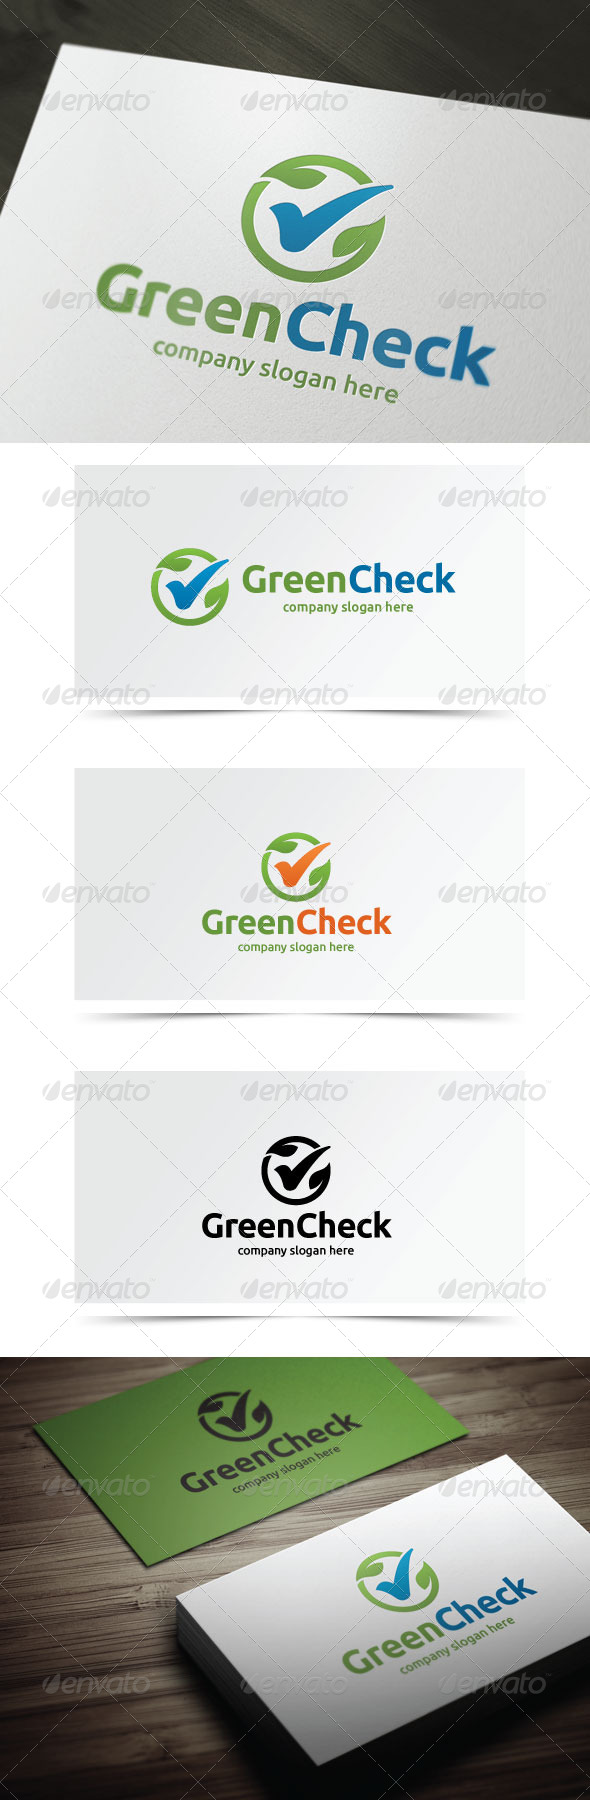 GraphicRiver Green Check 5803550